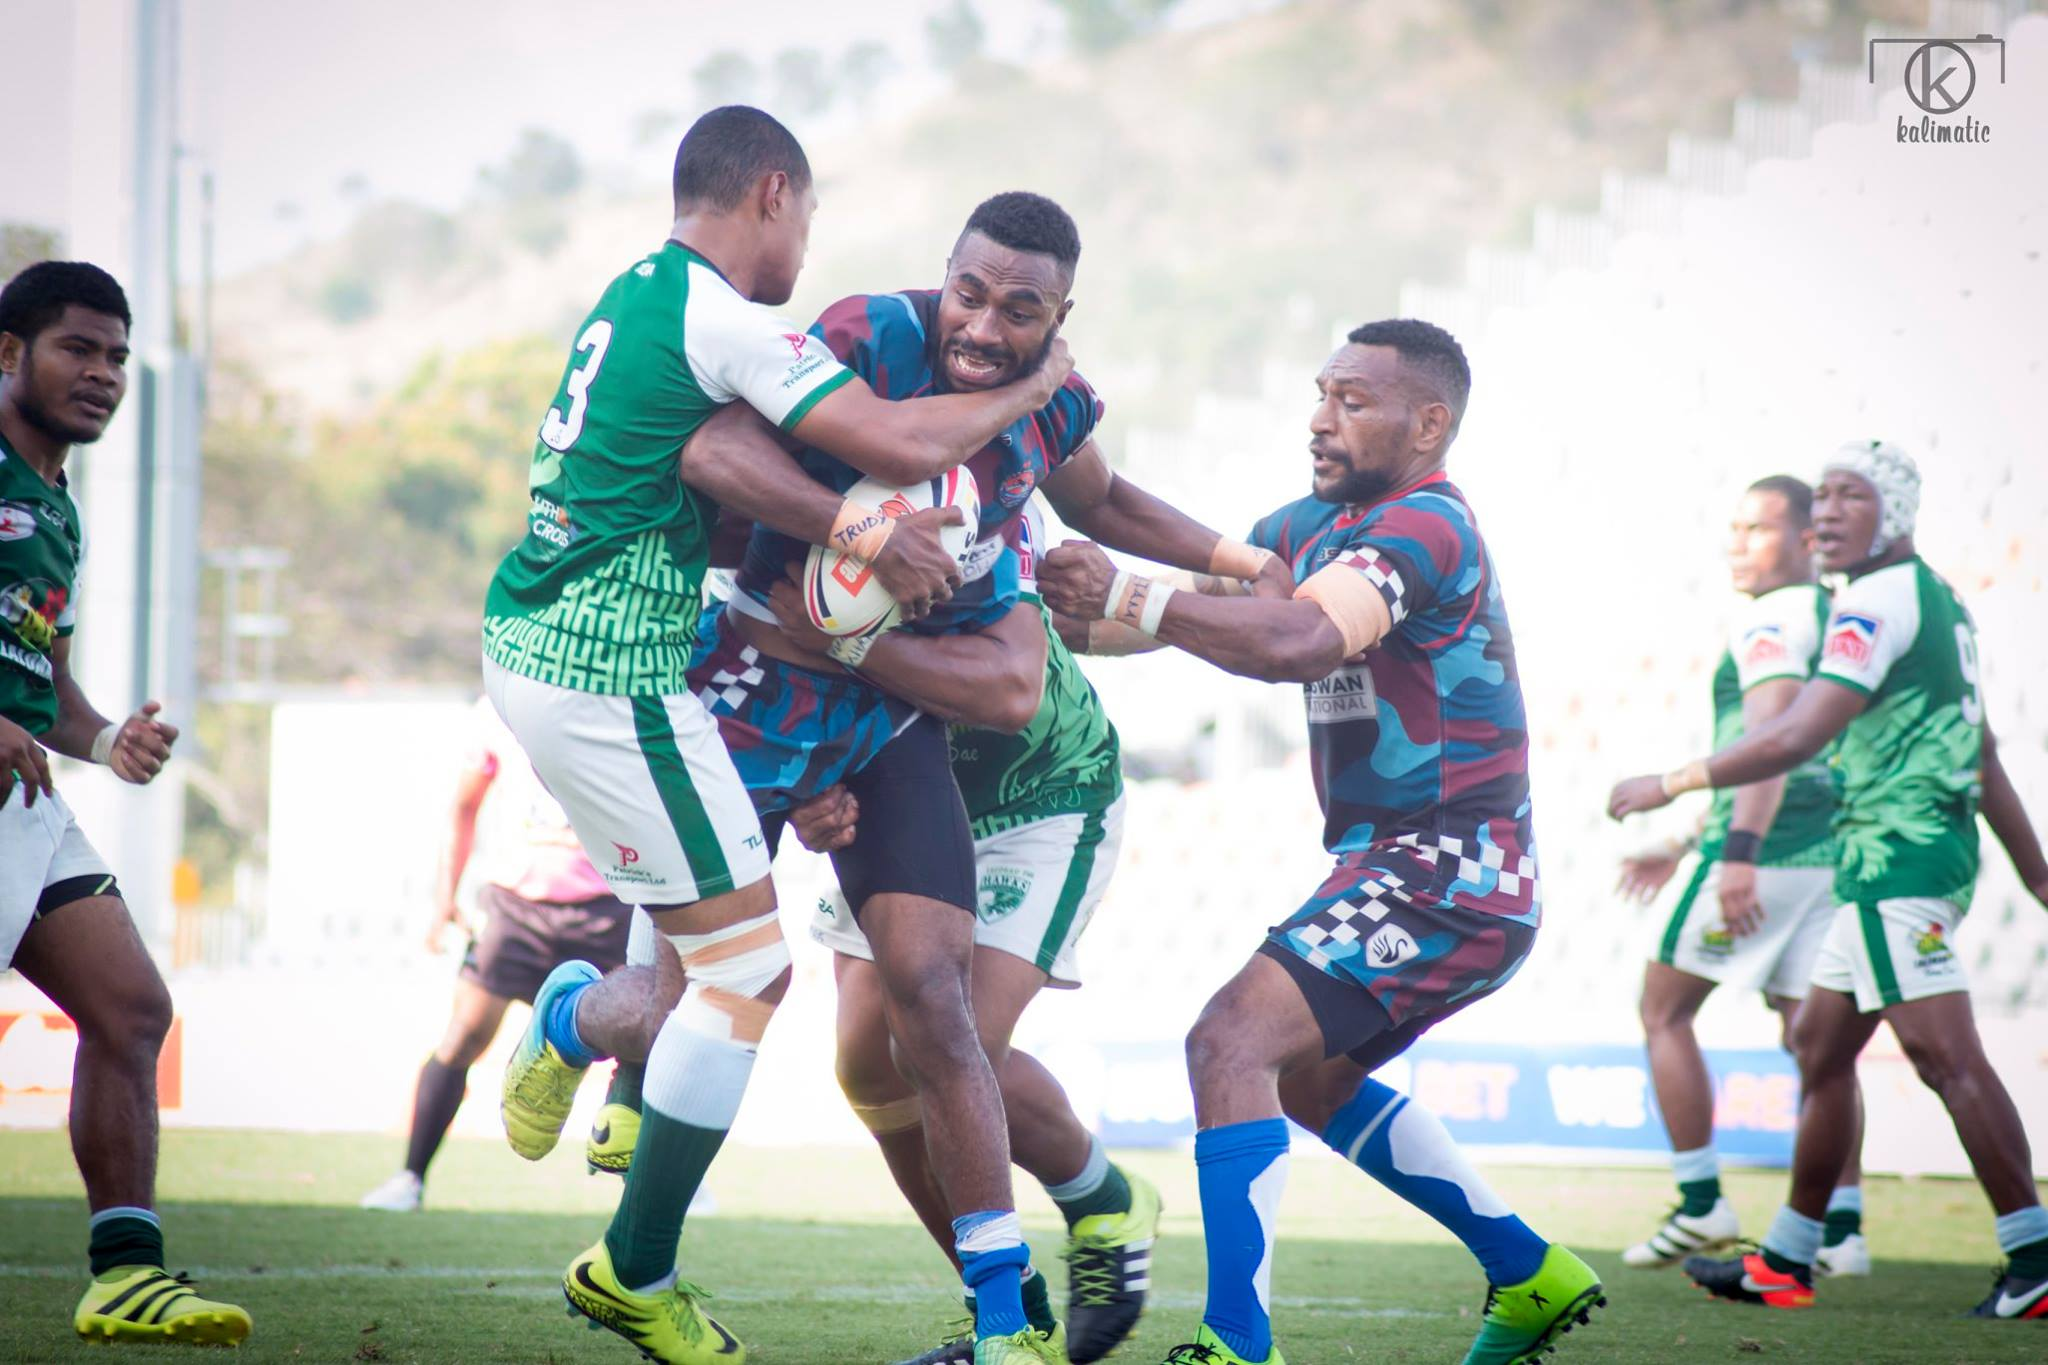 Results from opening weekend of Port Moresby RFL Nines